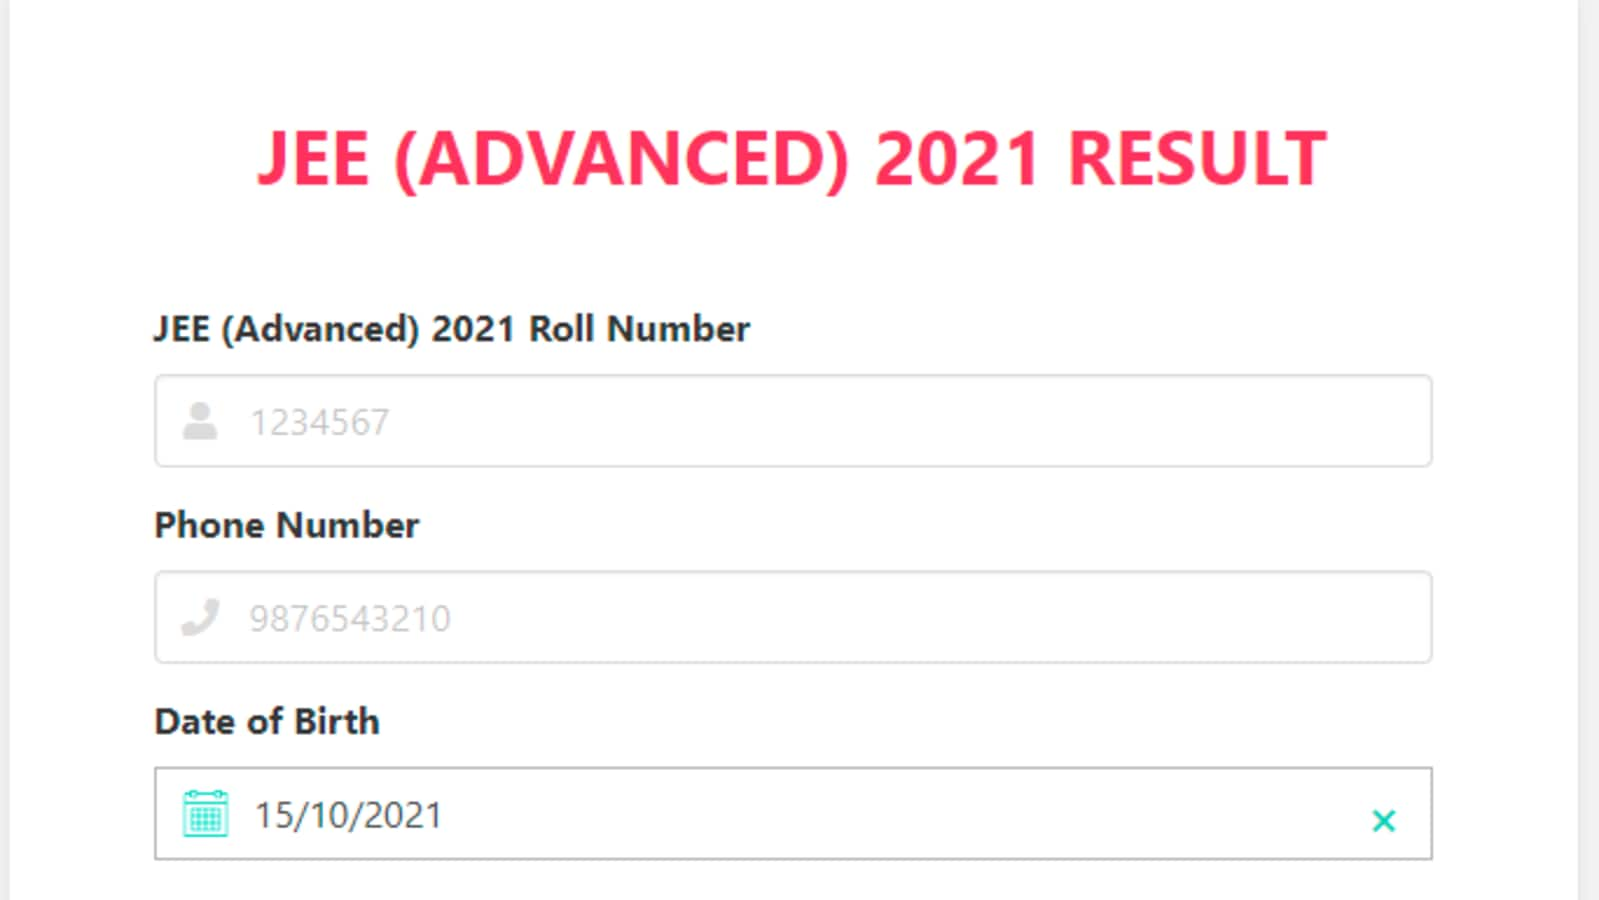 JEE advanced 2021 result declared at jeeadv.ac.in - Hindustan Times